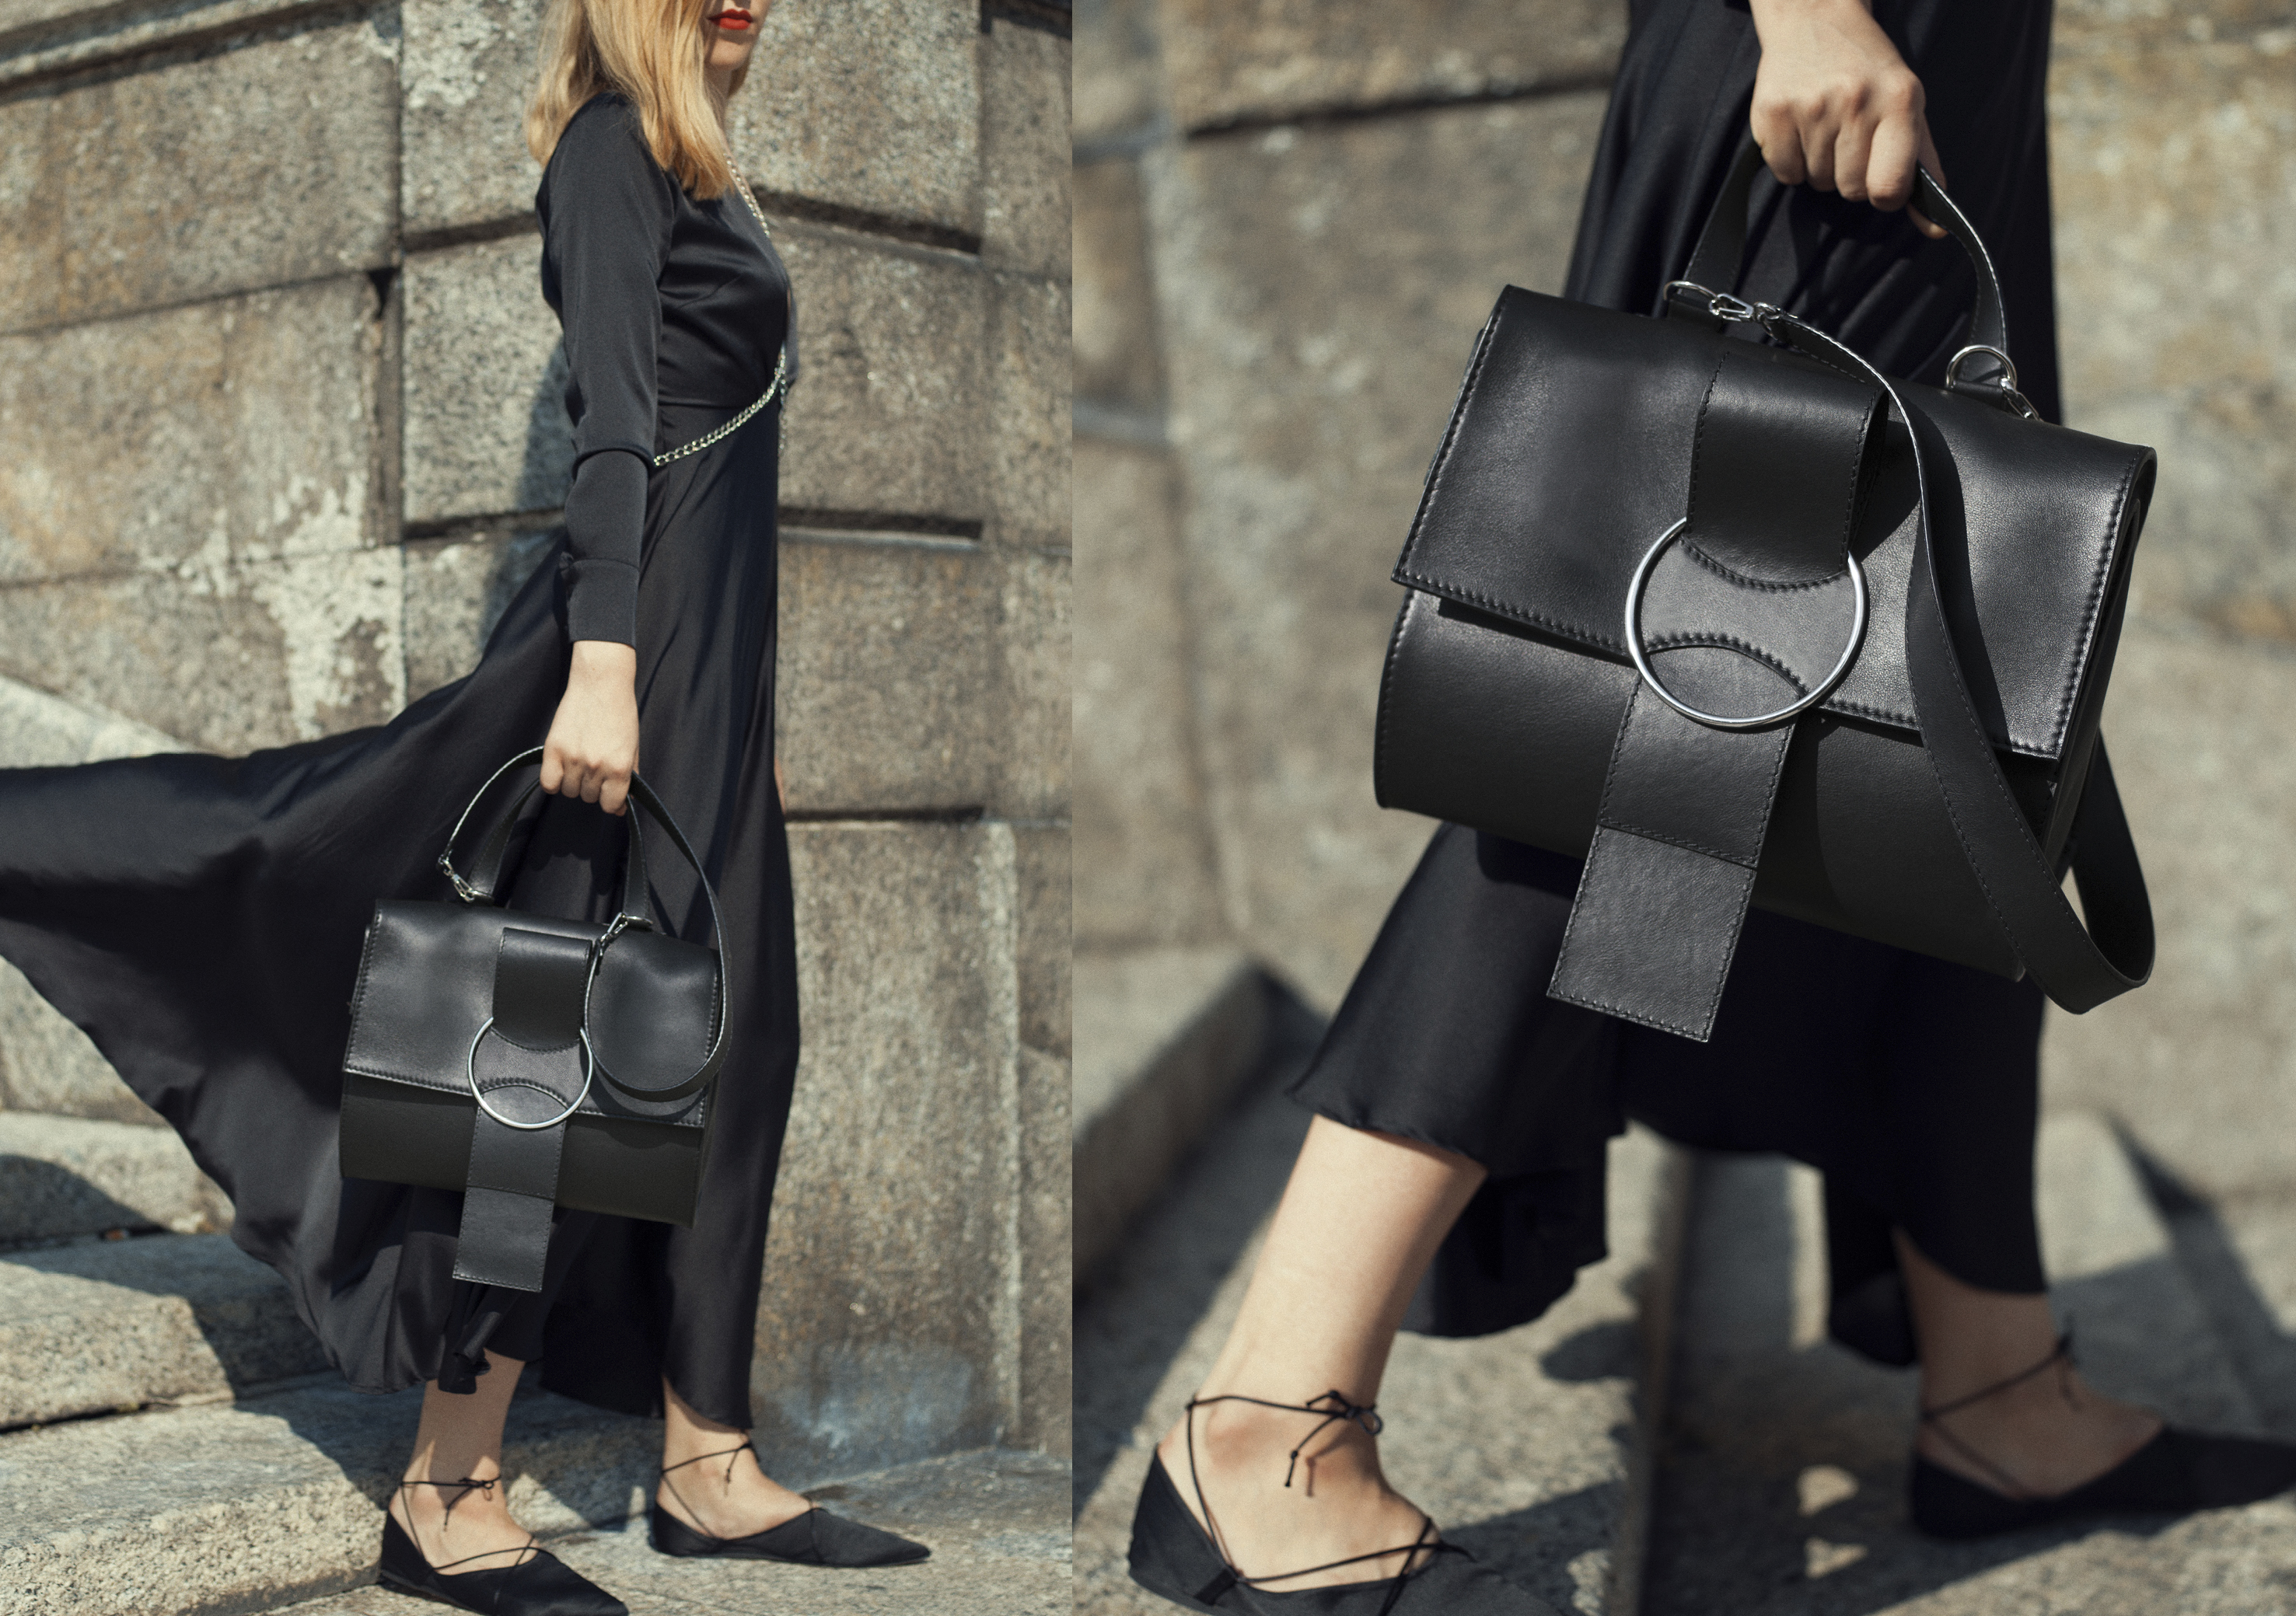 OTTONEmilano, bag, handbag, ss18, Karren,leather,24h,shoulder bag,totebag,shopping, top handle, black,oversize ring,strap,bow,ribbon,women,minimal,modern